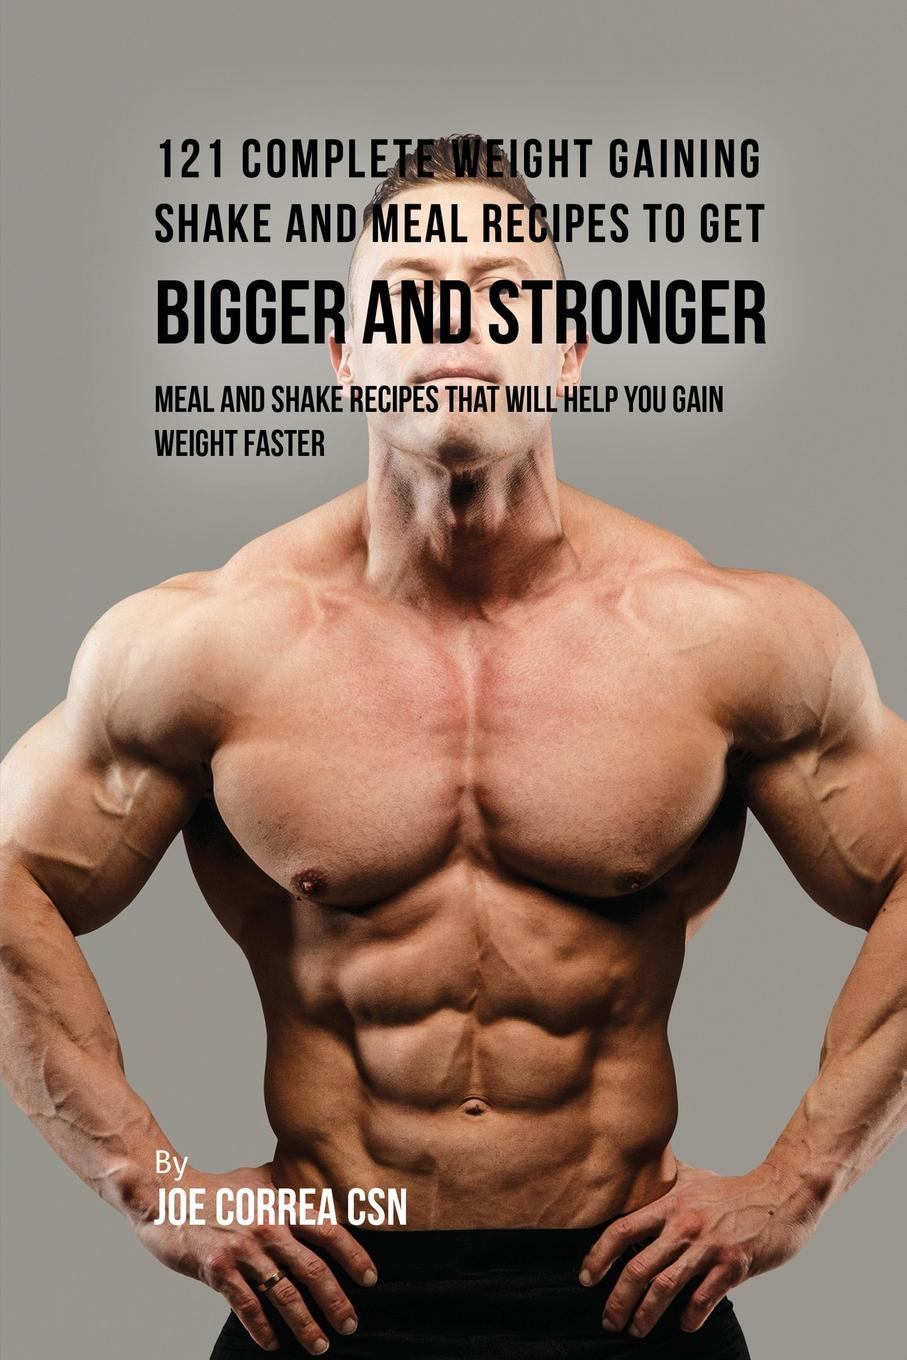 Joe Correa 121 Complete Weight Gaining Shake and Meal Recipes to Get Bigger and Stronger. Meal and Shake Recipes That Will Help You Gain Weight Faster produce omega 3 fatty acids enriched eggs by using fish oil